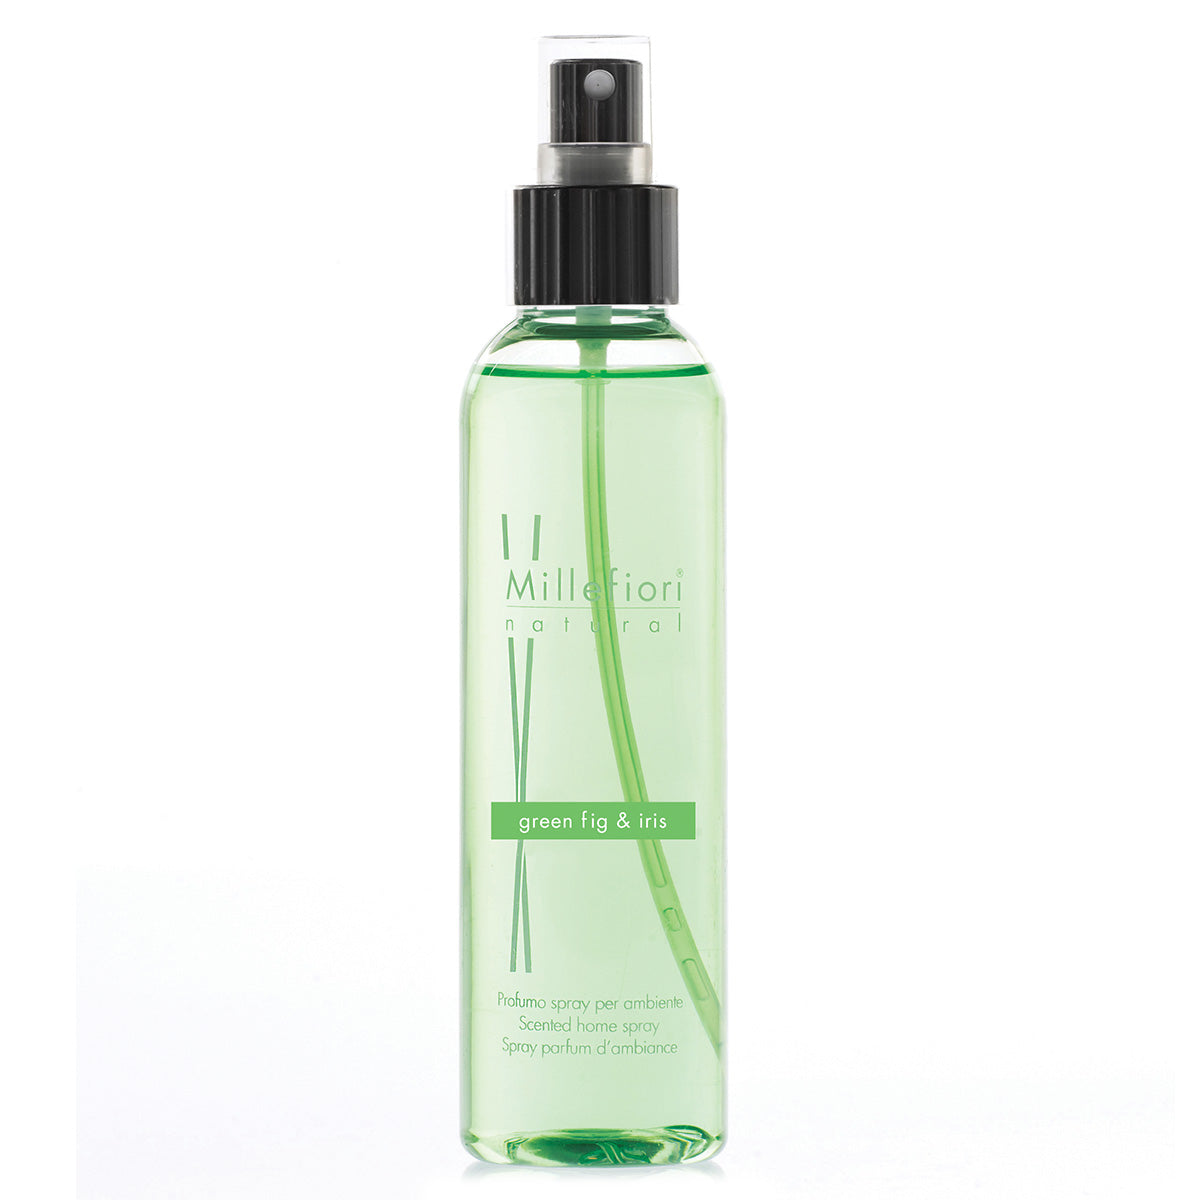 Spray camera 100ml GREEN FIG & IRIS